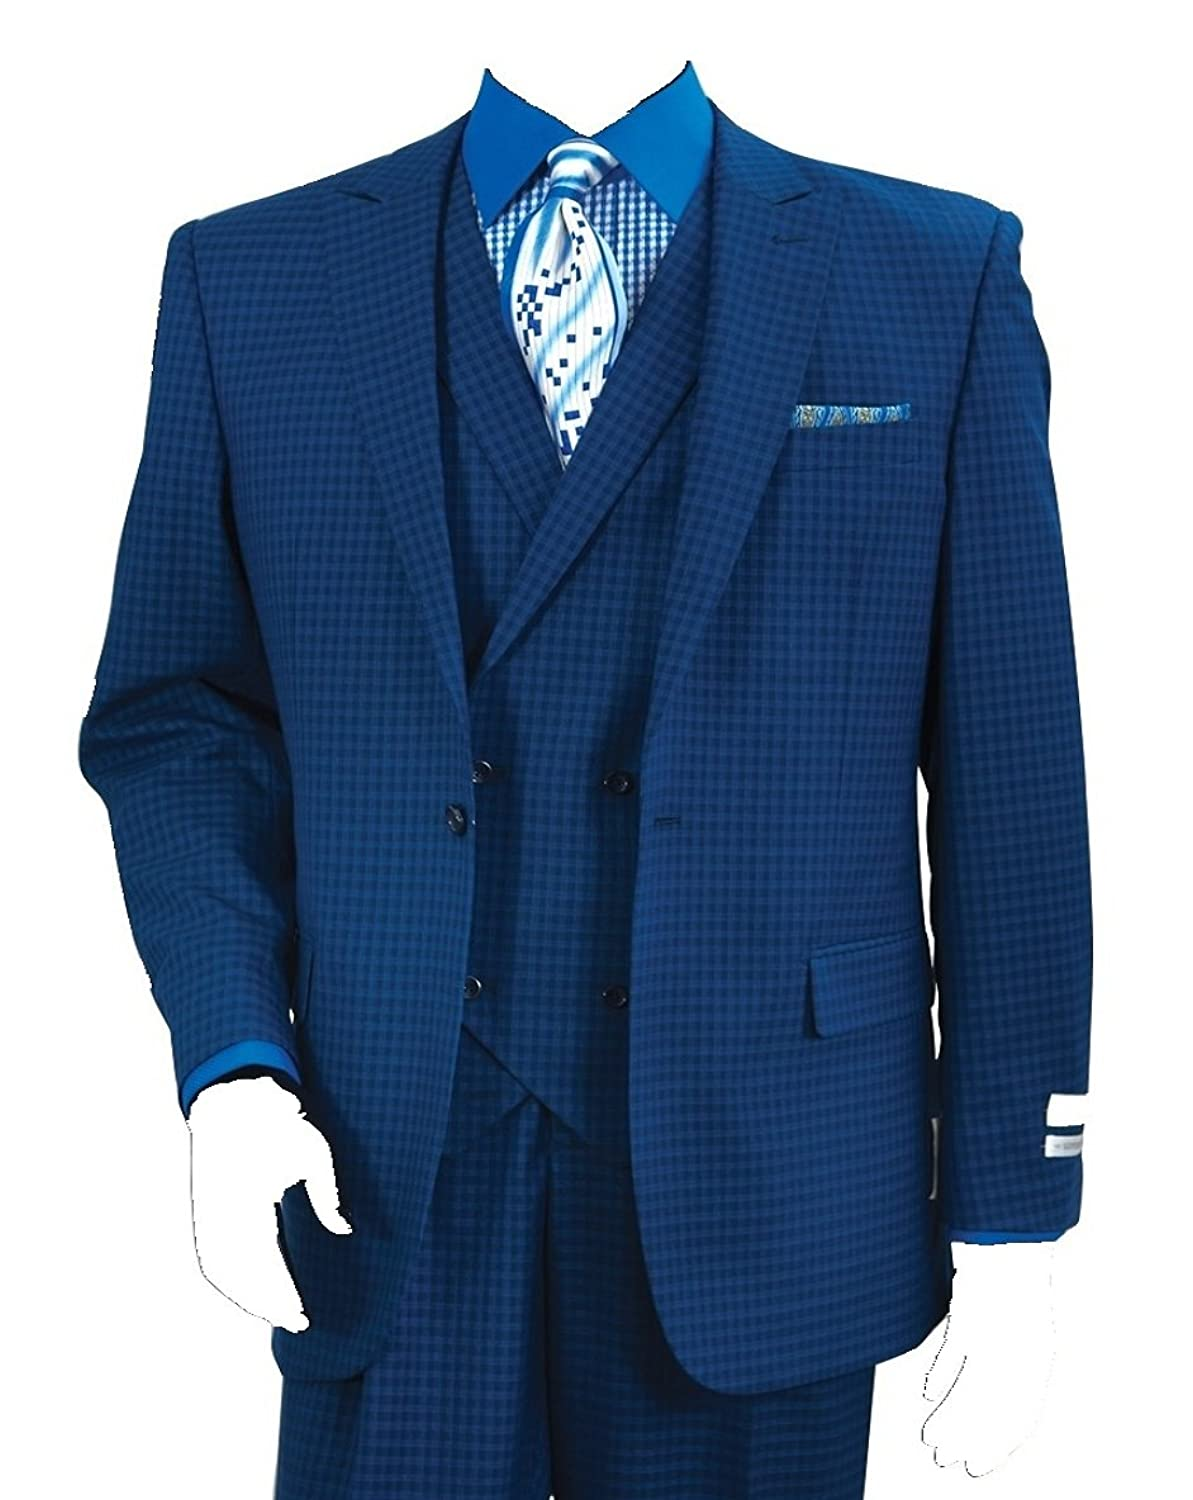 New 1940's Style Zoot Suits for Sale Mens 3 Piece Single Button Mini-Plaid Pattern Suit (Indigo) $149.99 AT vintagedancer.com